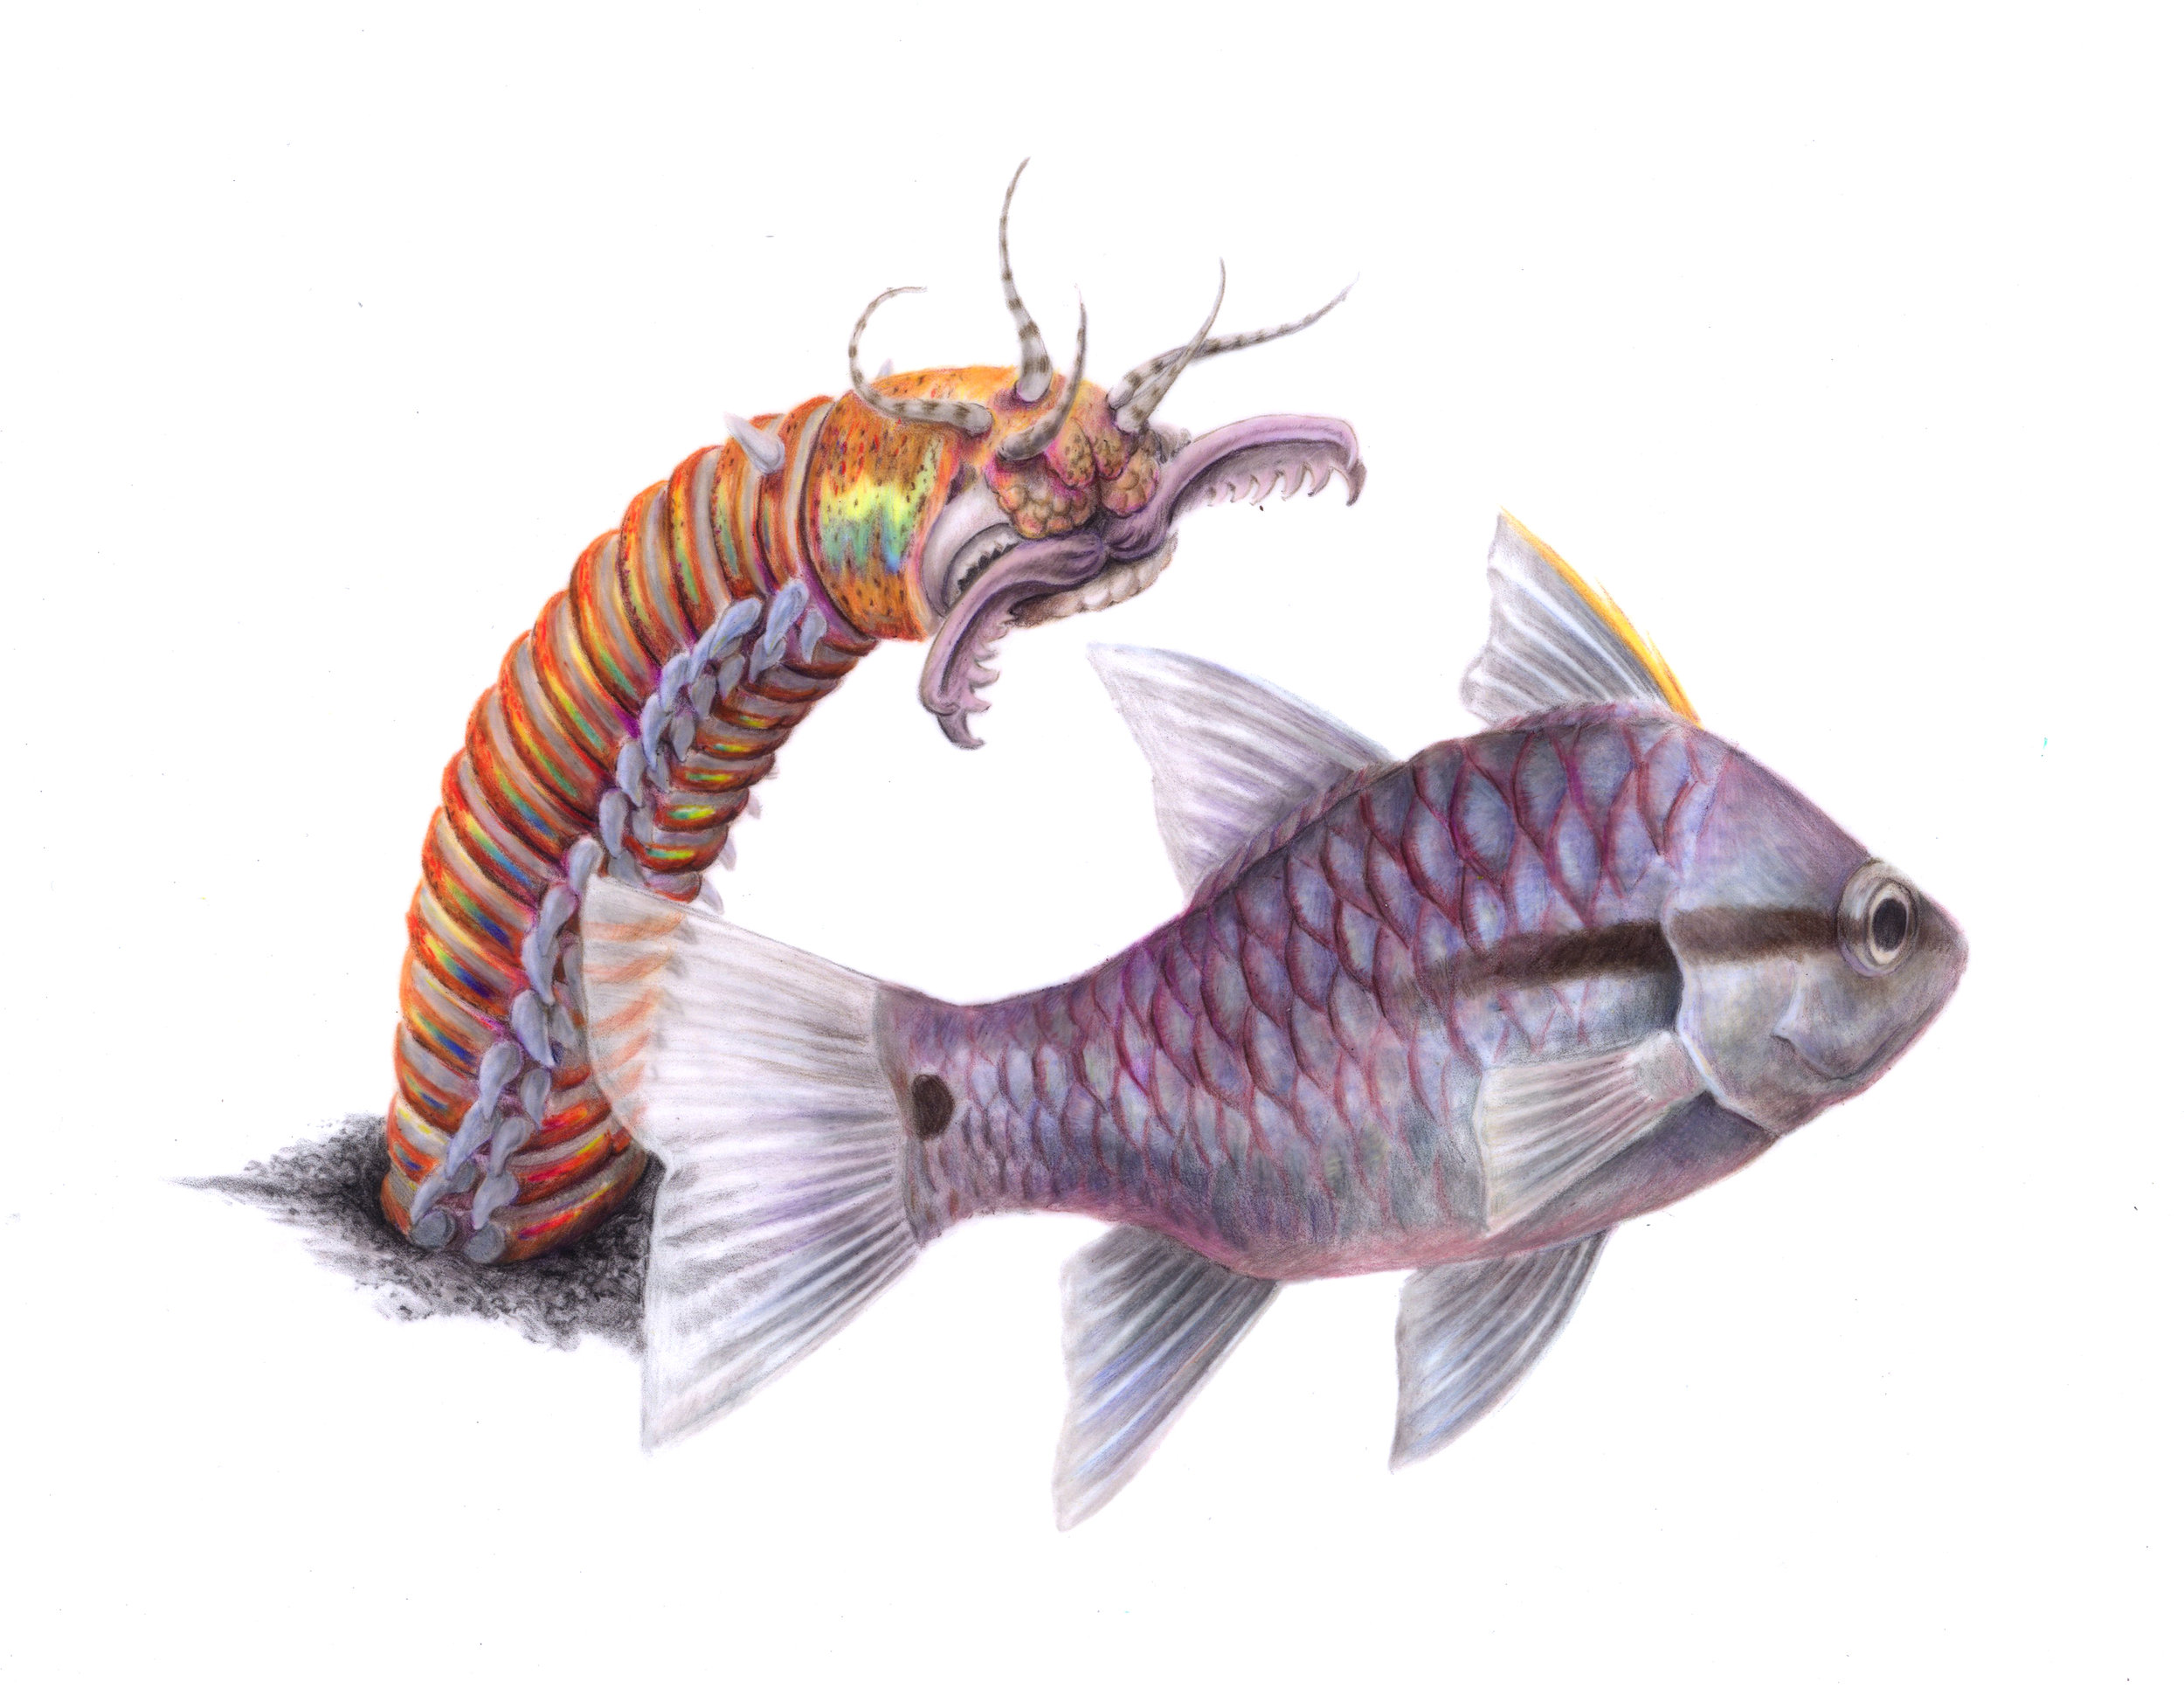 Bobbit Worm and Iridescent Cardinalfish